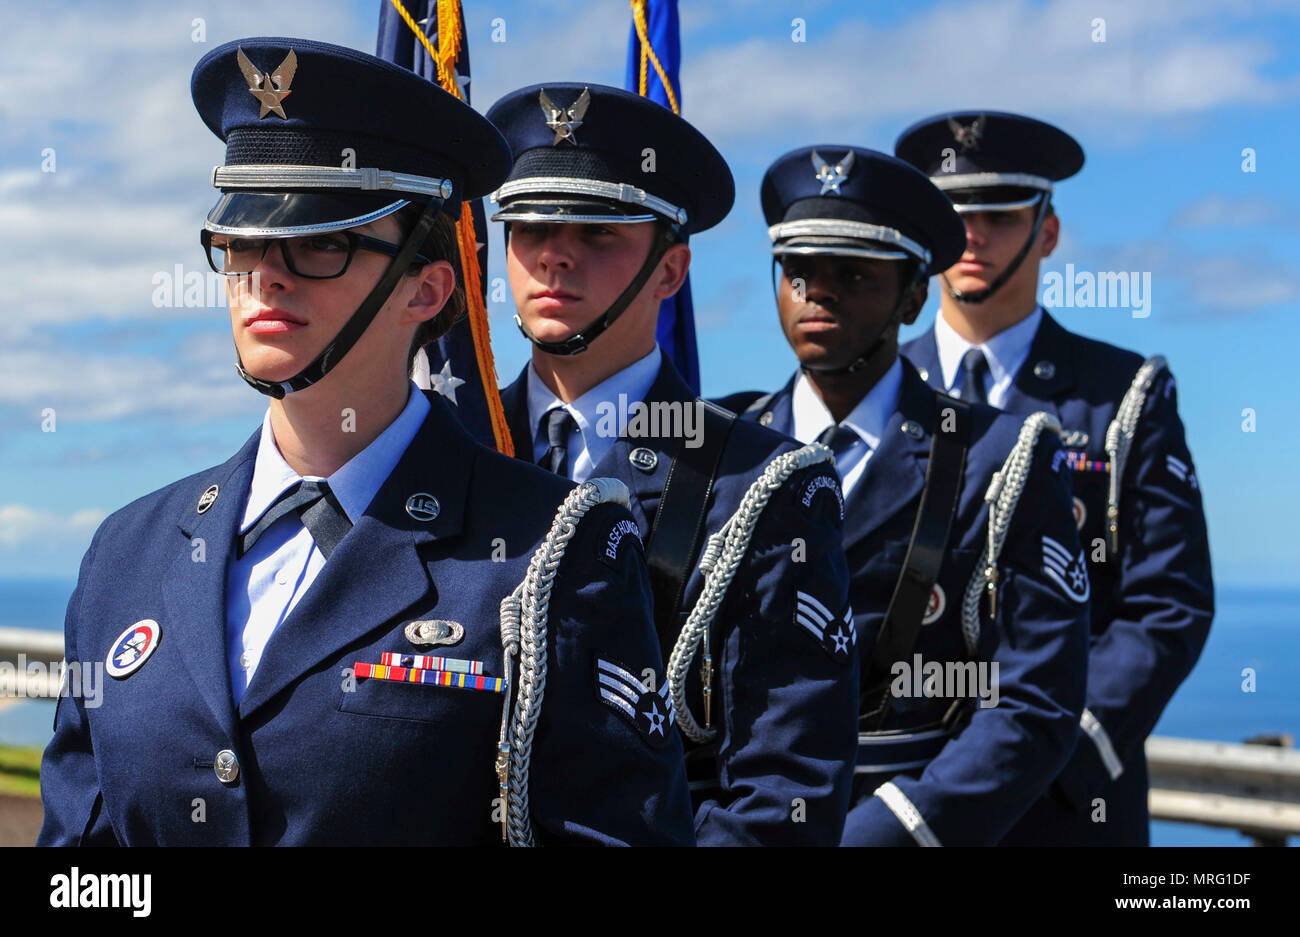 Joint Base Pearl Harbor-Hickam Honor Guard prepares to post the colors during the Detachment 3 Change of Command Ceremony, Kaena Point, Hawaii, June 9, 2017.  Detachment 3 is a component of the 21st Space Operations Squadron, 50th Network Operations Group, 50th Space Wing, and is located on the western tip of Oahu.  It is the oldest and one of seven worldwide remote tracking stations in the Air Force Satellite Control Network.  (U.S. Air Force photo by Tech. Sgt. Heather Redman) - Stock Image